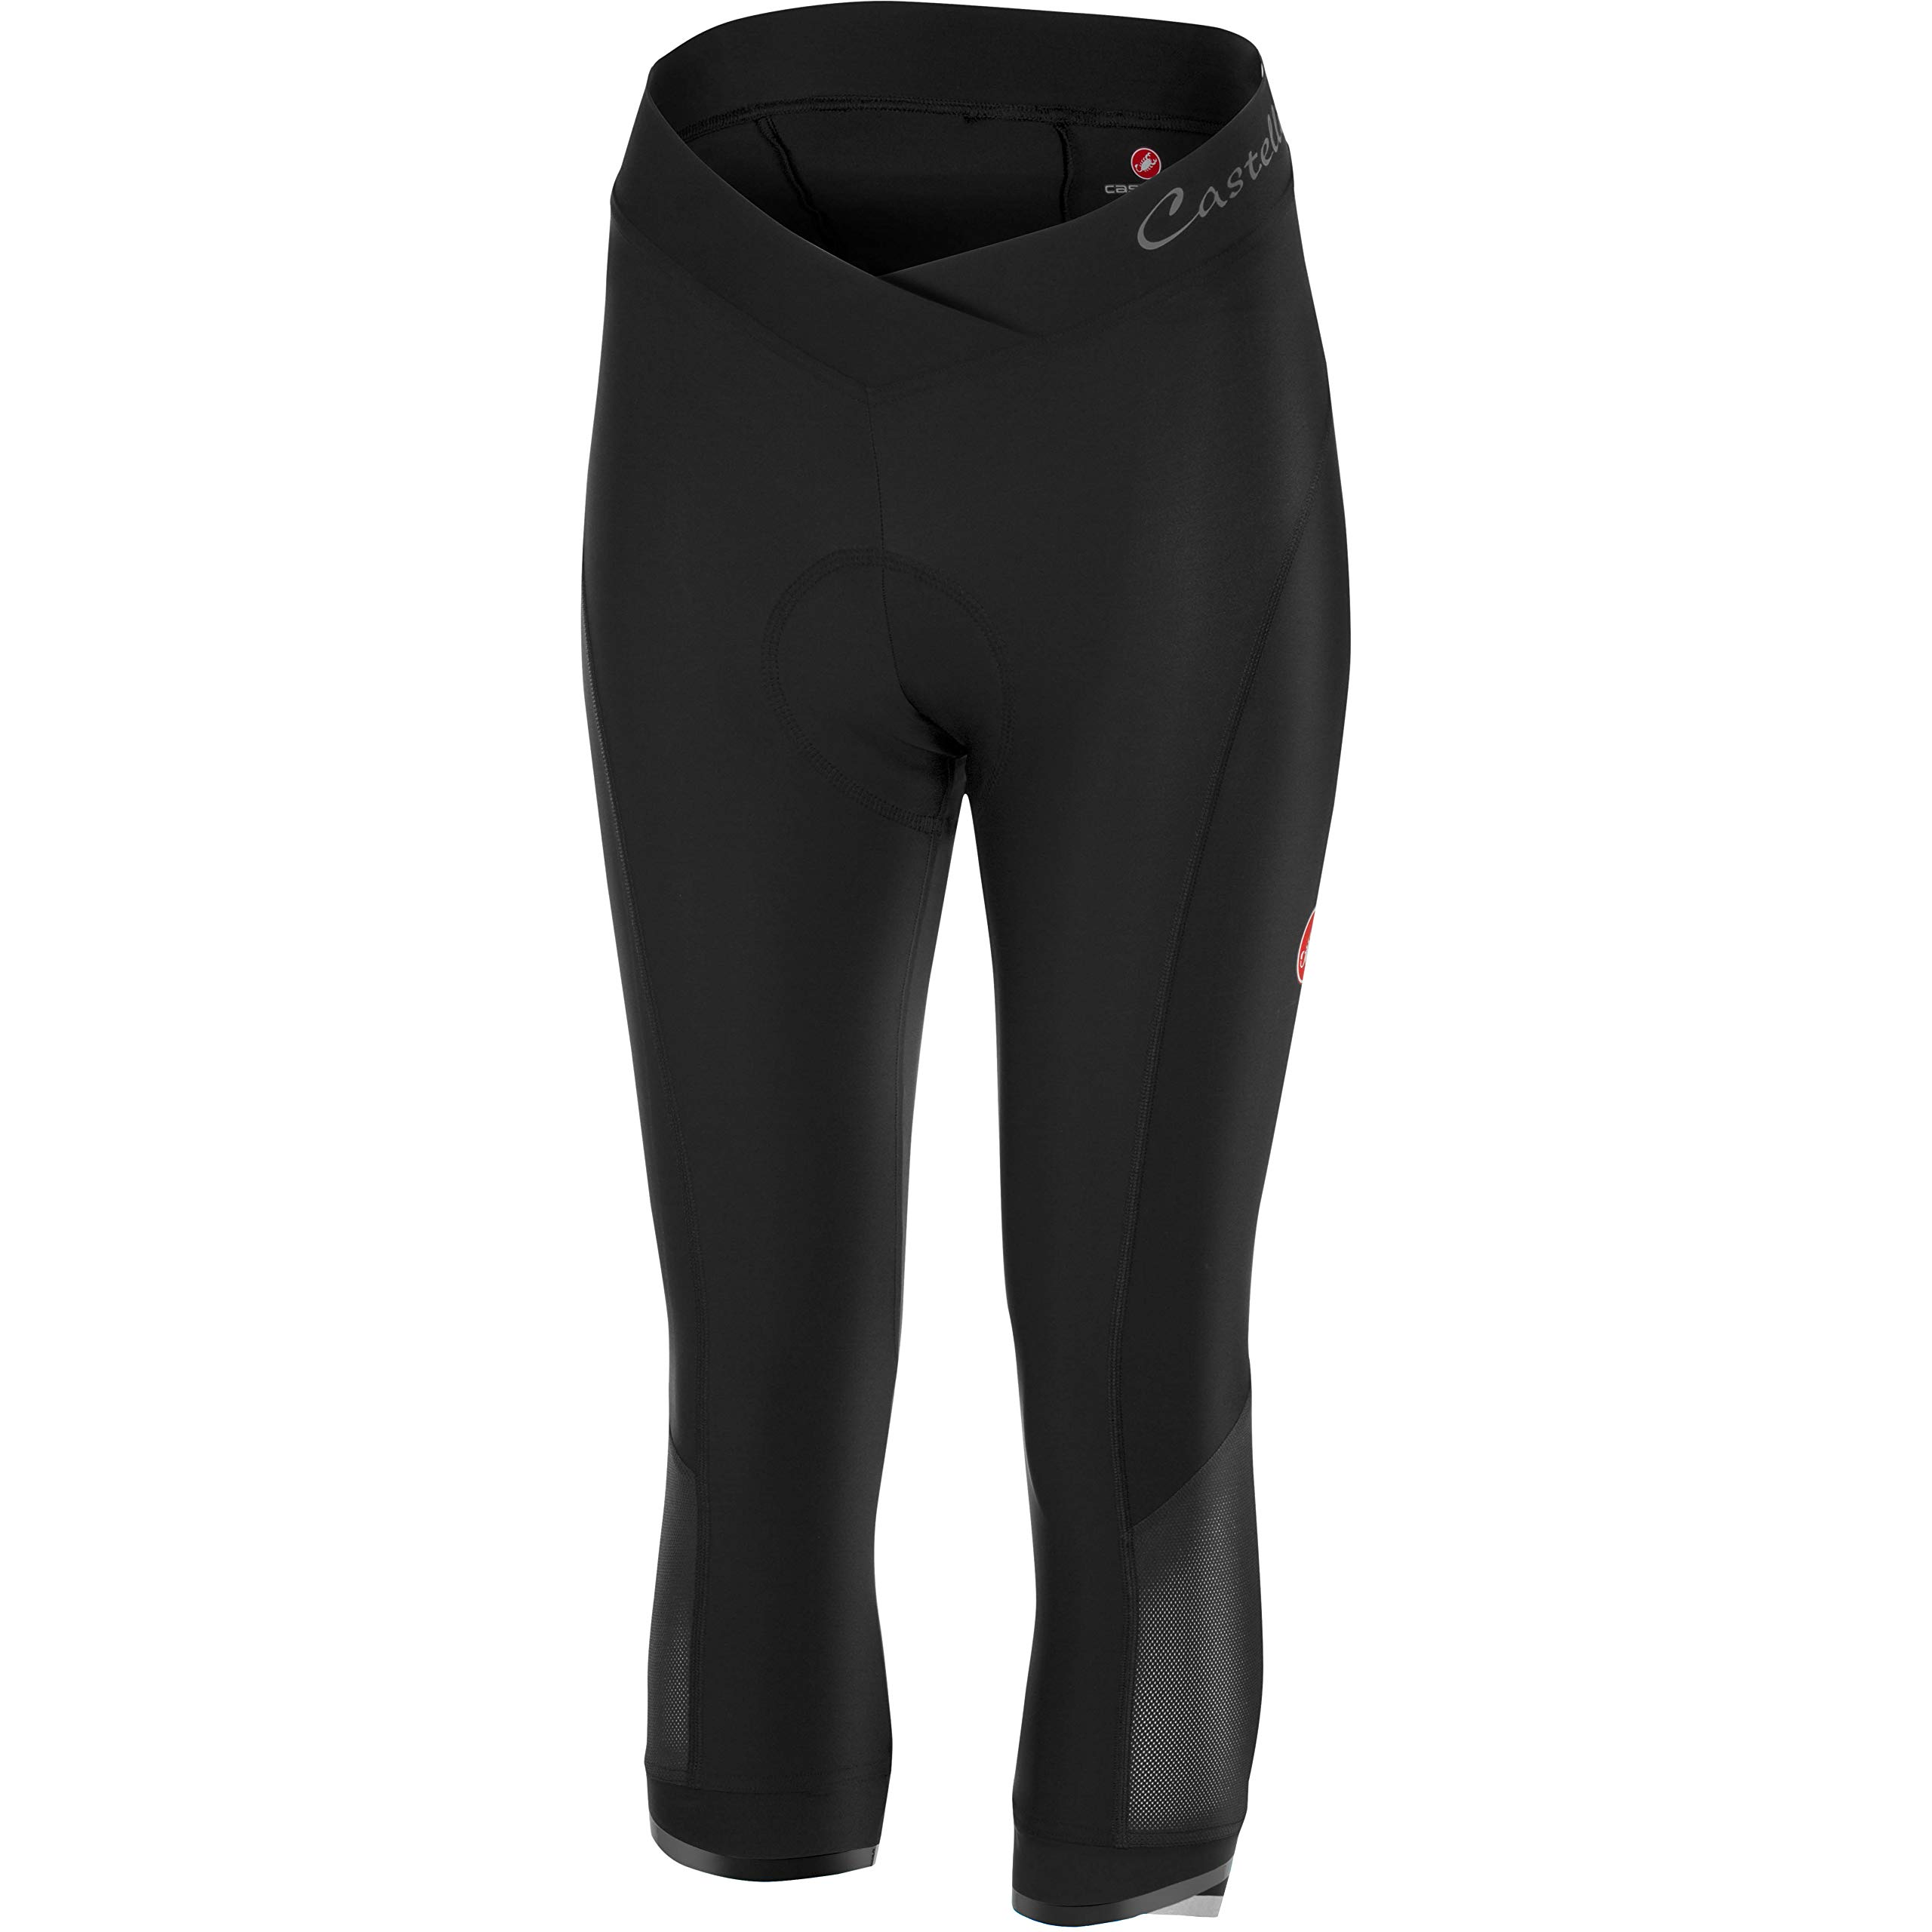 Castelli Vista Knicker - Women's Black, M by Castelli (Image #1)